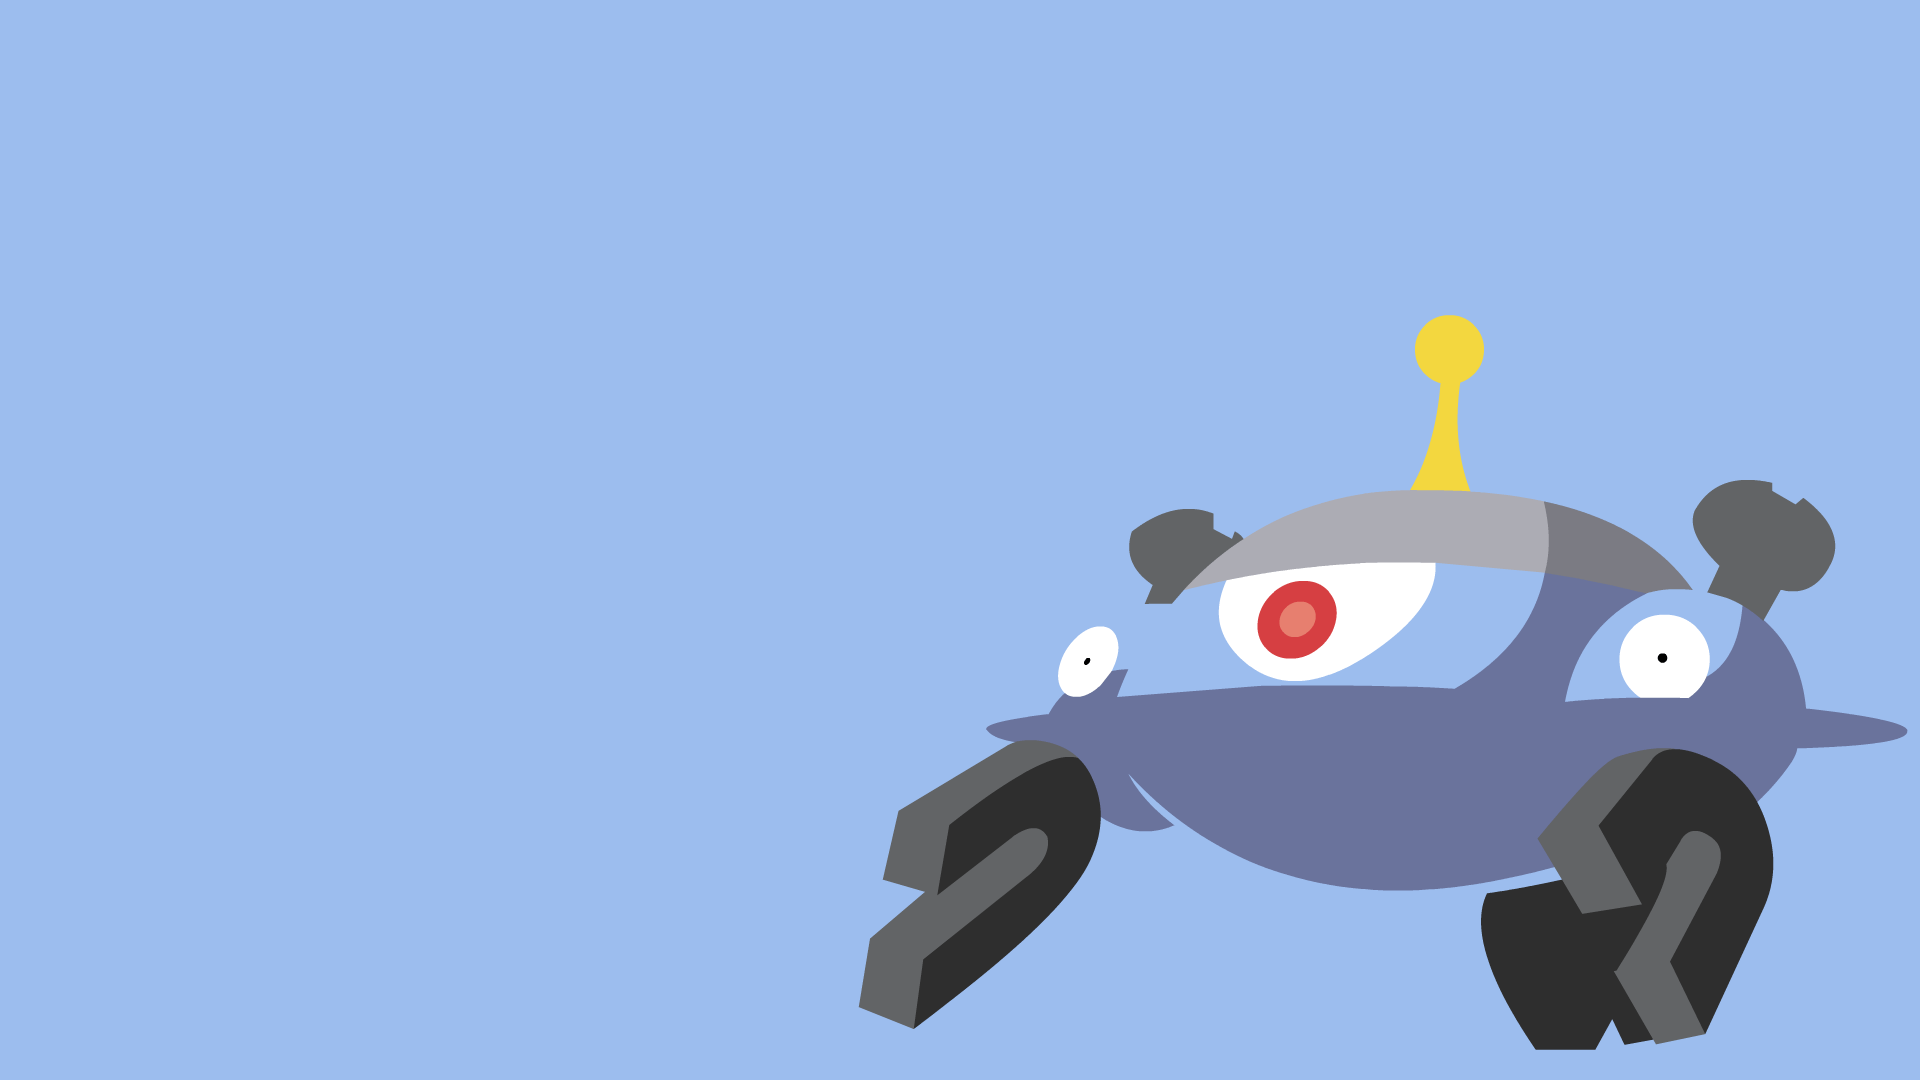 magnezone-wallpaper-48351-49952-hd-wallpapers - Some1sPC